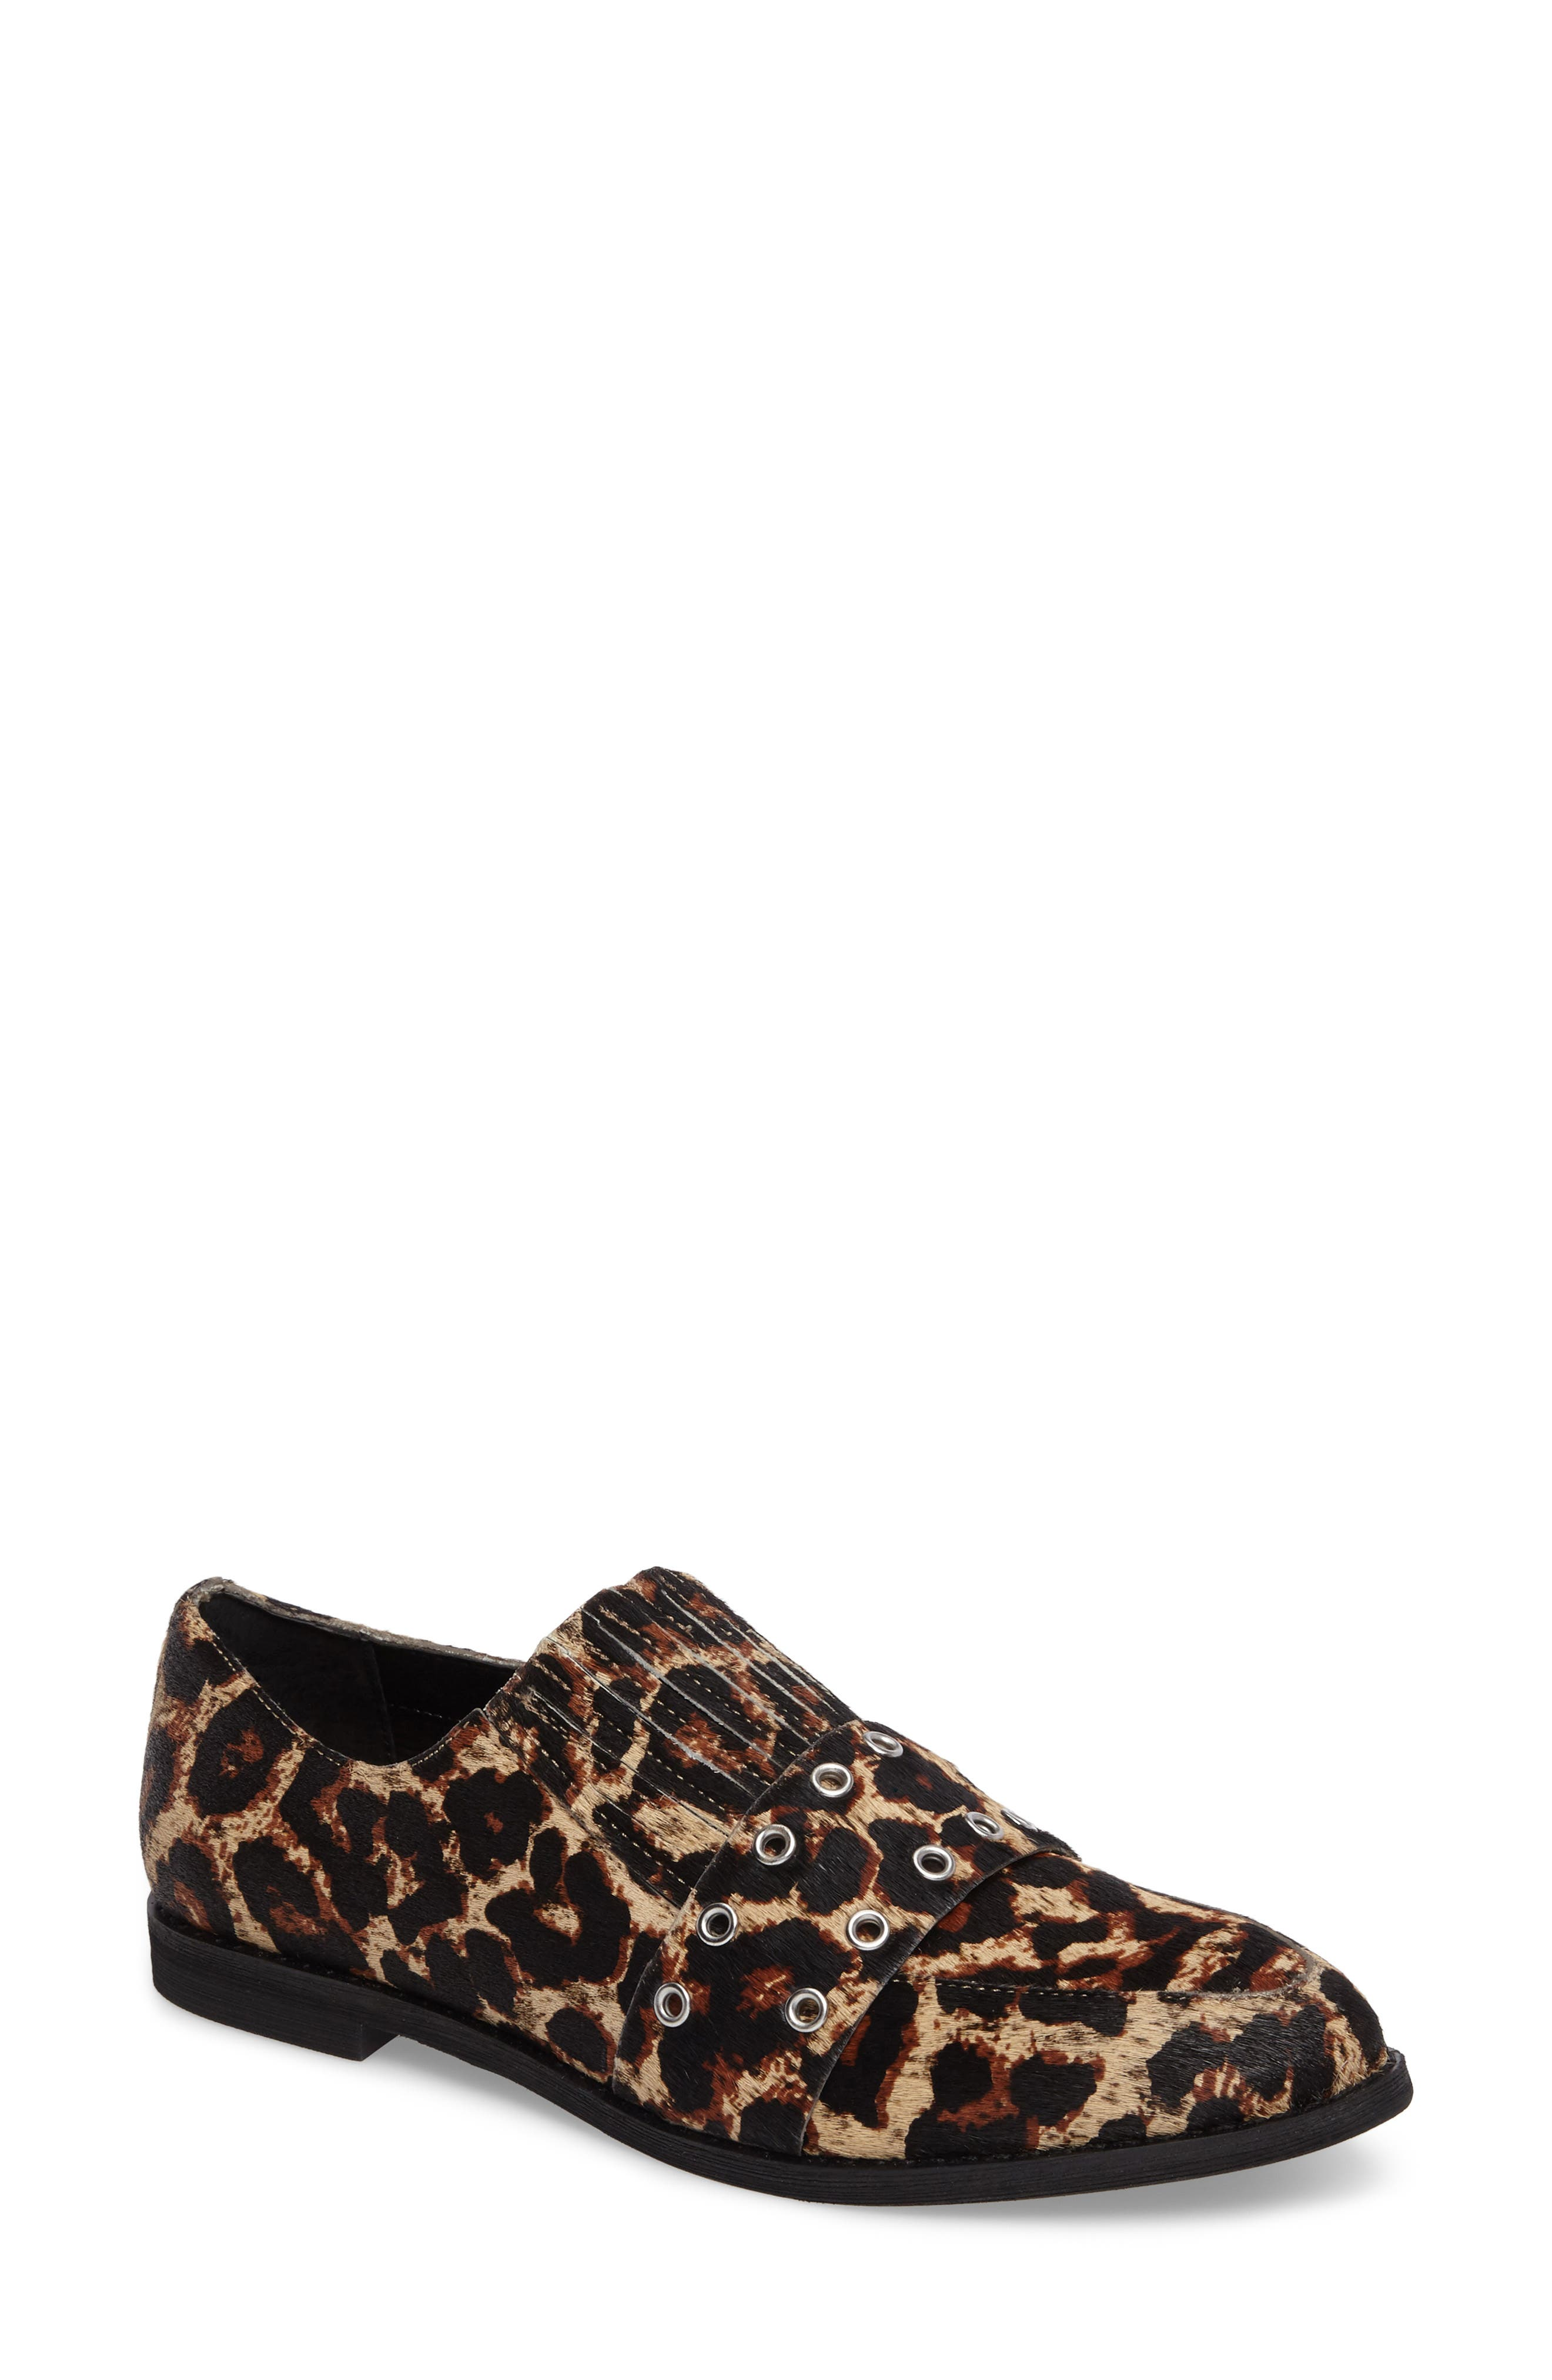 Alternate Image 1 Selected - Treasure & Bond Ainsley Pointy Toe Loafer